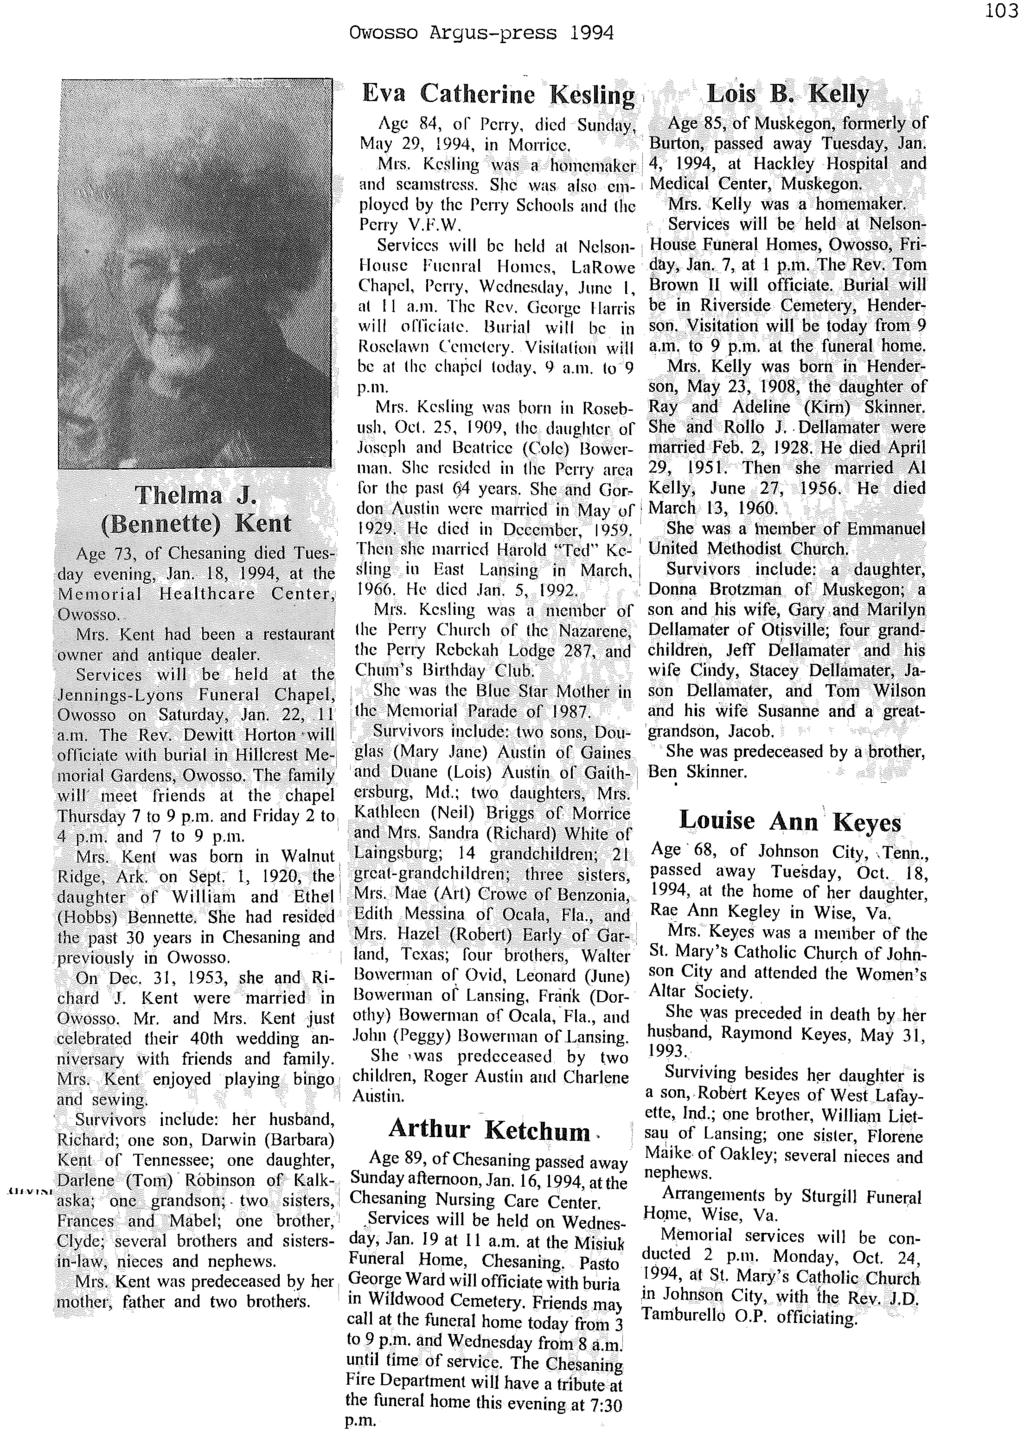 OWosso Argus-press 1994 103 Darlene (Tom) Robinson of Kalk- k as. a; one grandson;. two sisters, Frances and Mabel; one brother, Clyde; several brothers and sistersin-law, nieces and nephews. Mrs.